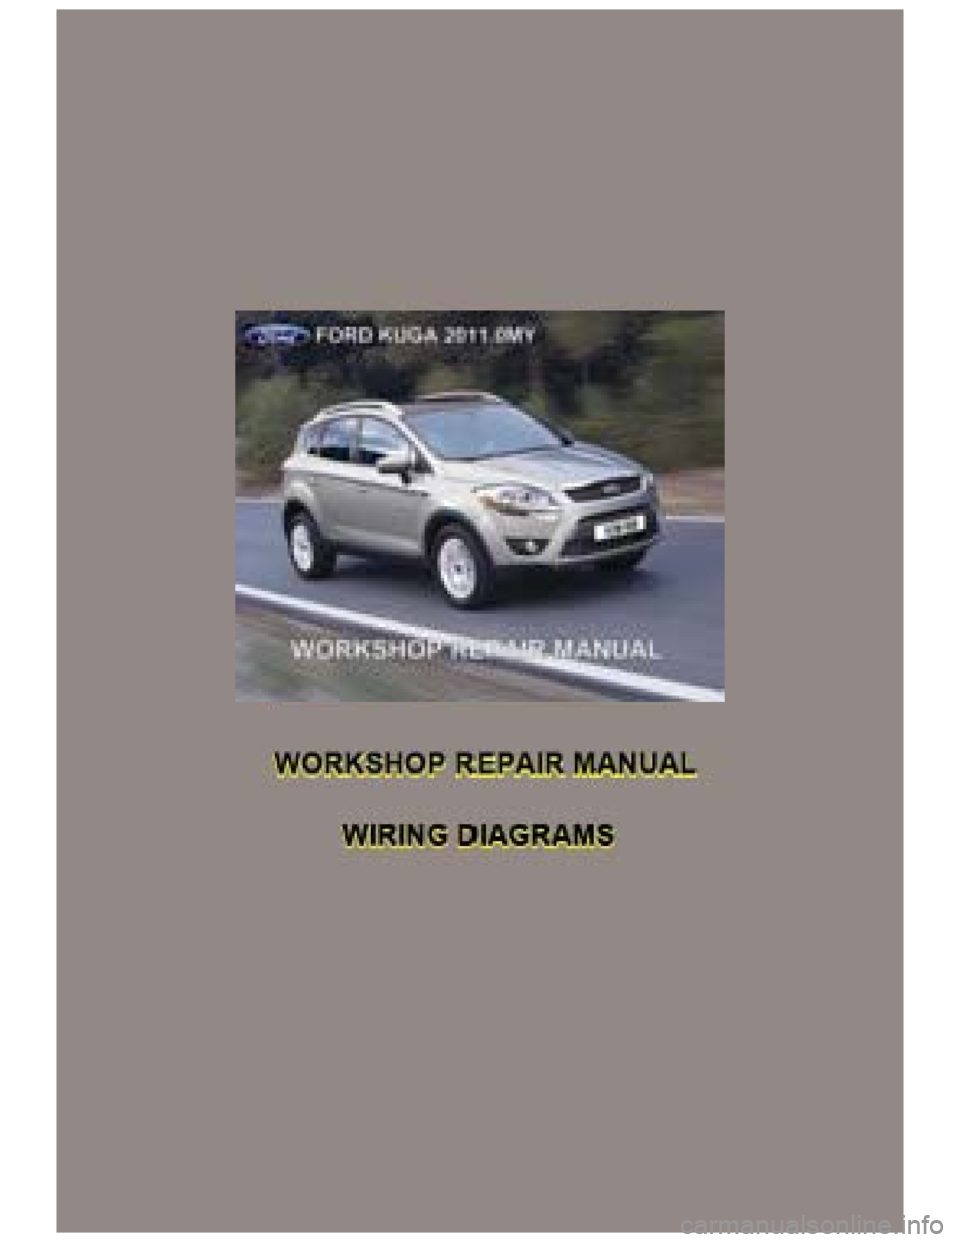 service manual pdf 2011 ford f150 repair manual ford. Black Bedroom Furniture Sets. Home Design Ideas